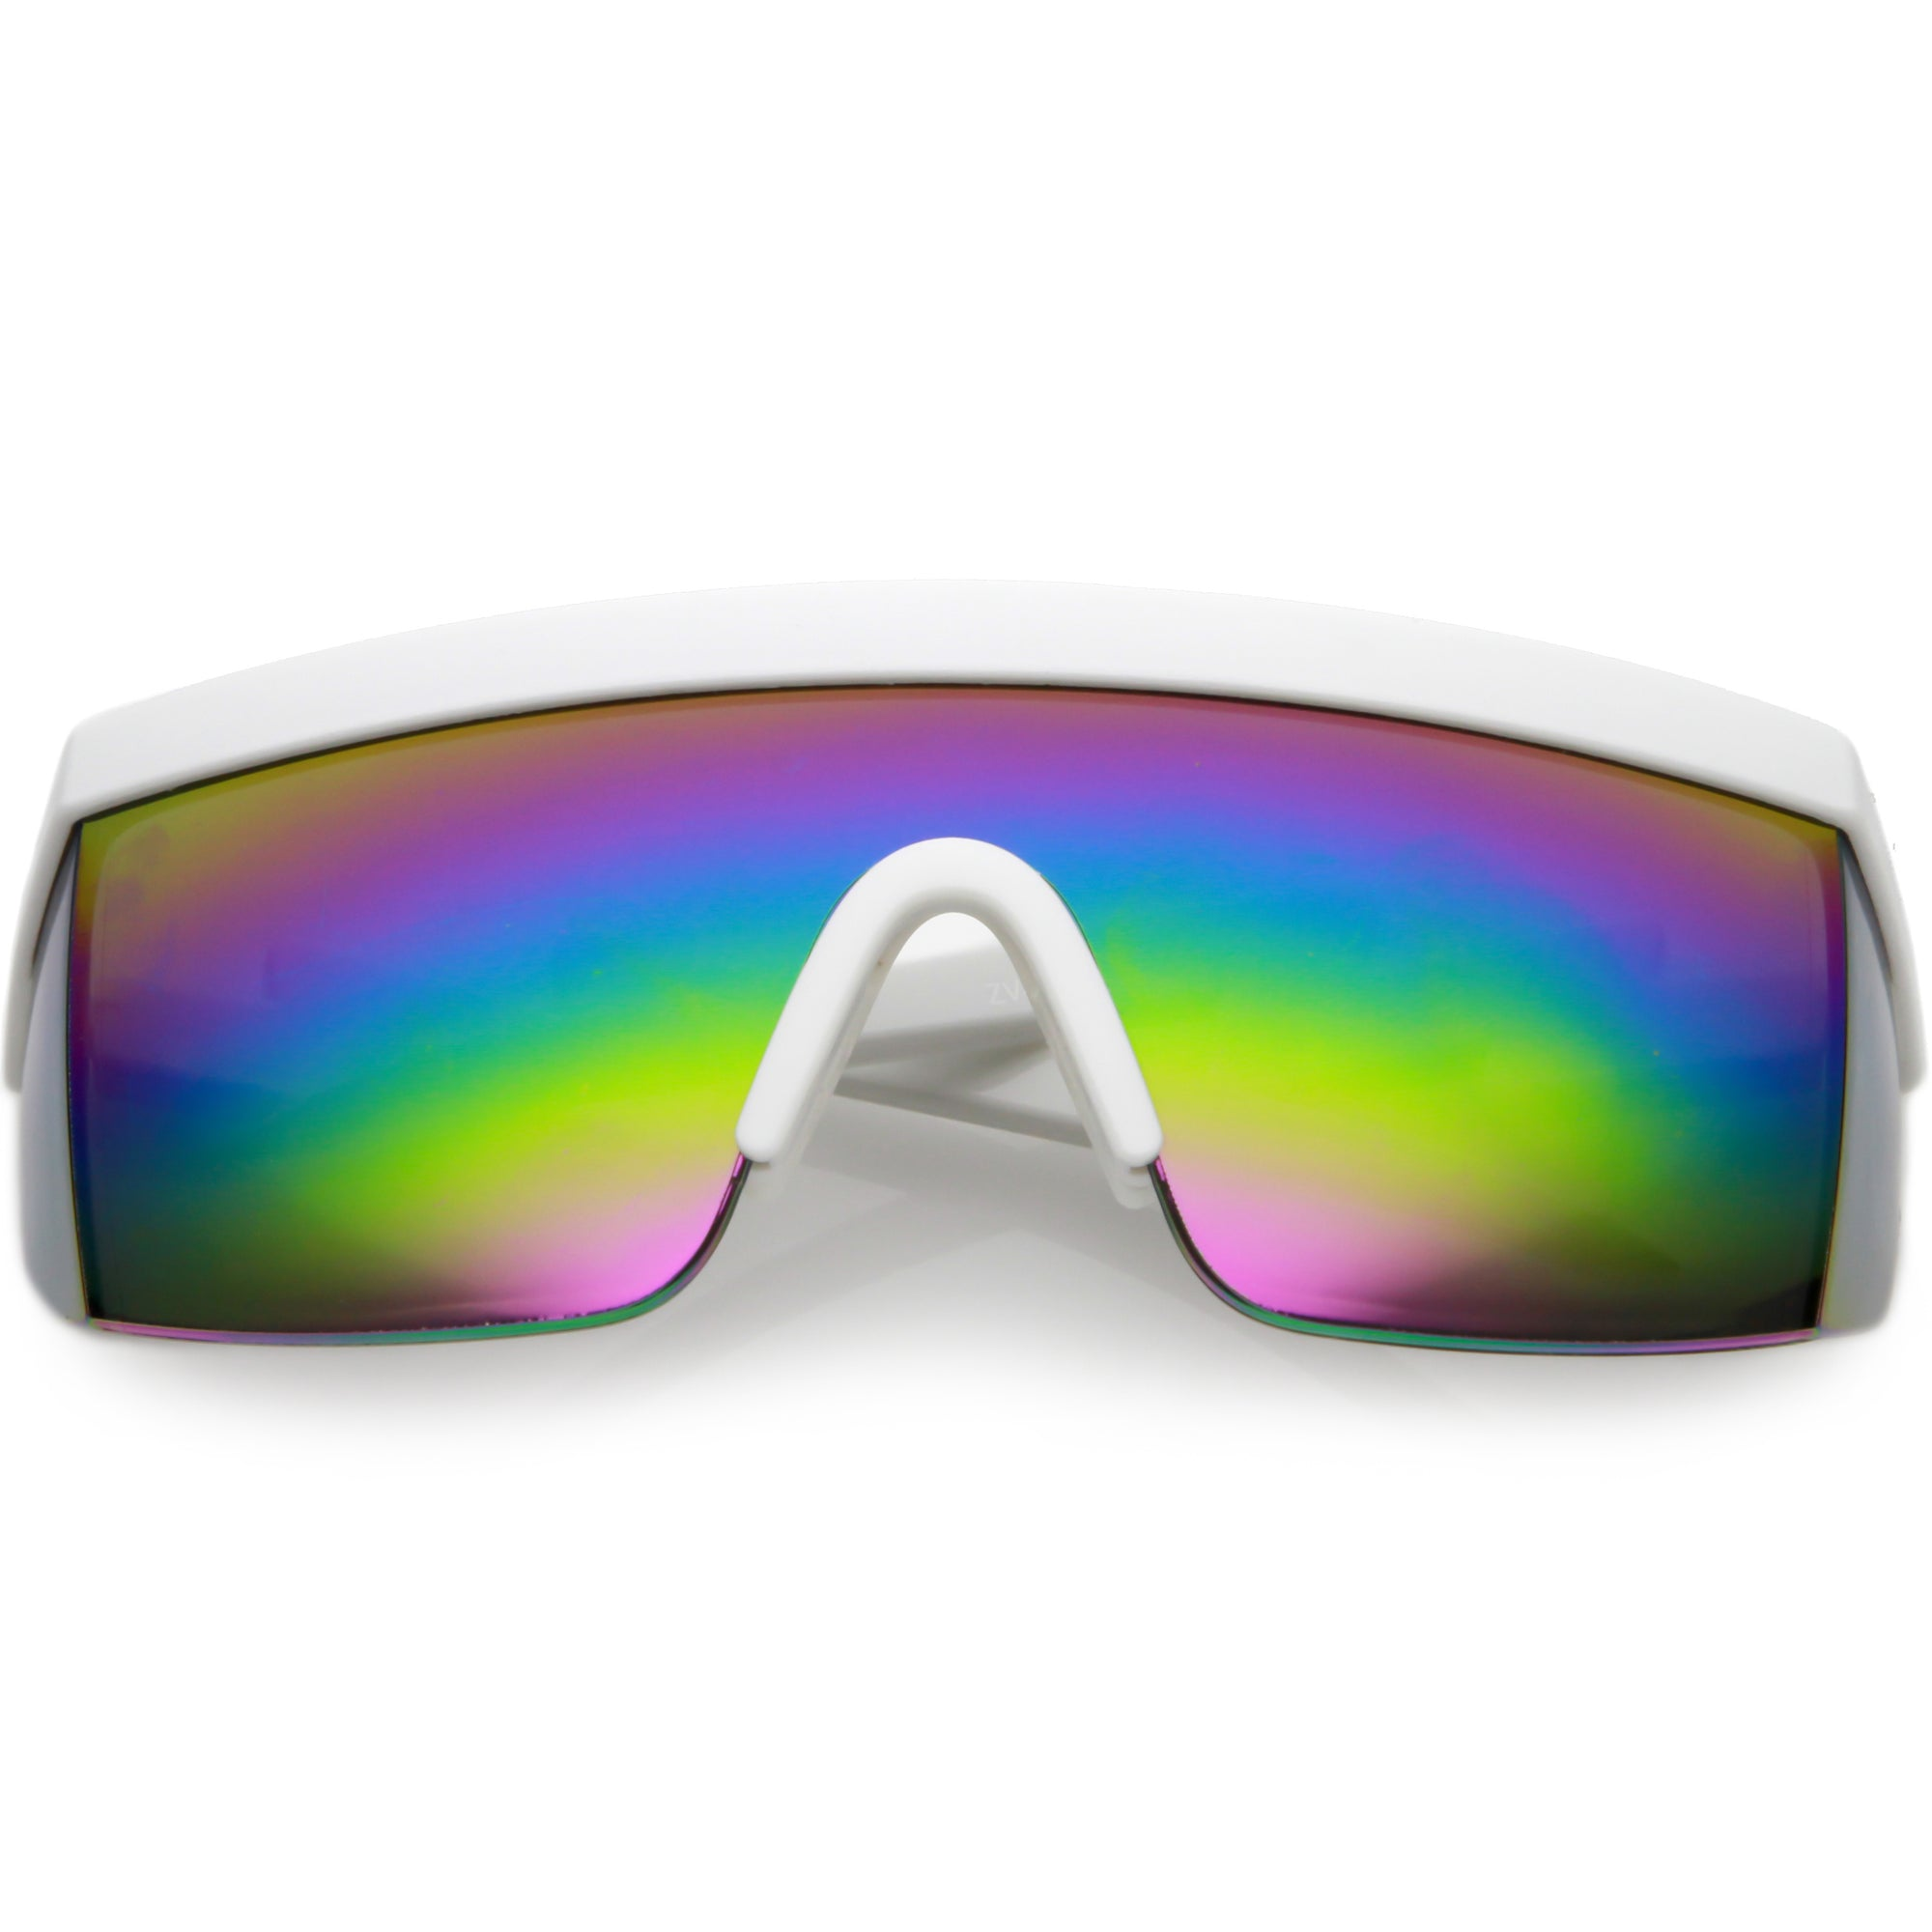 Retro Flat Top Rainbow Mirrored Goggle Shield Sunglasses C545